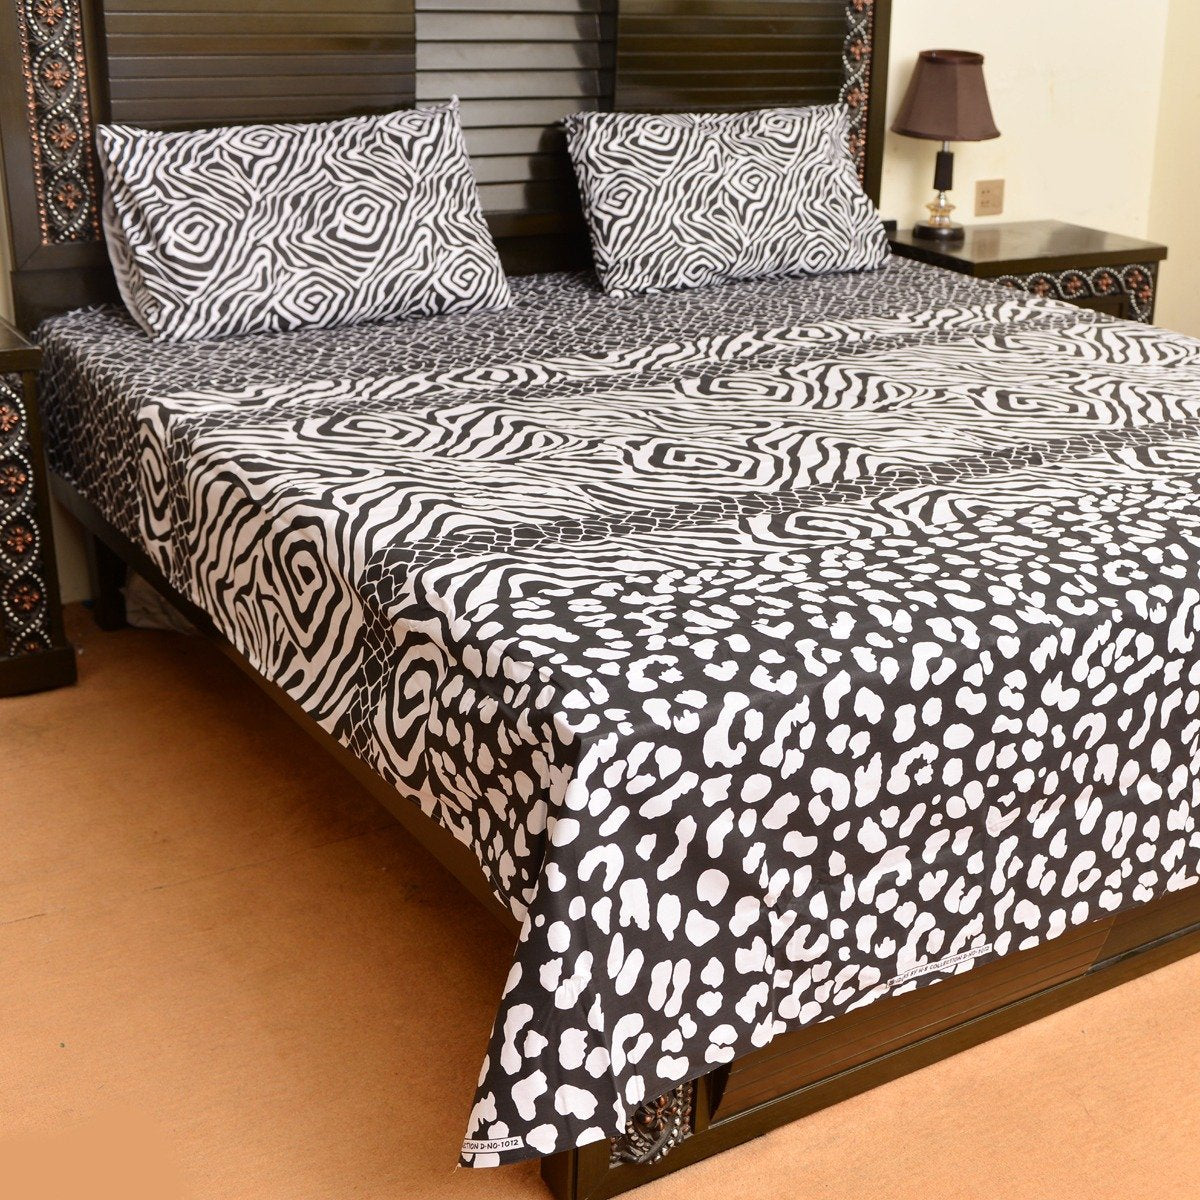 White leopard cotton bed sheet with 2 pillow cases - waseeh.com